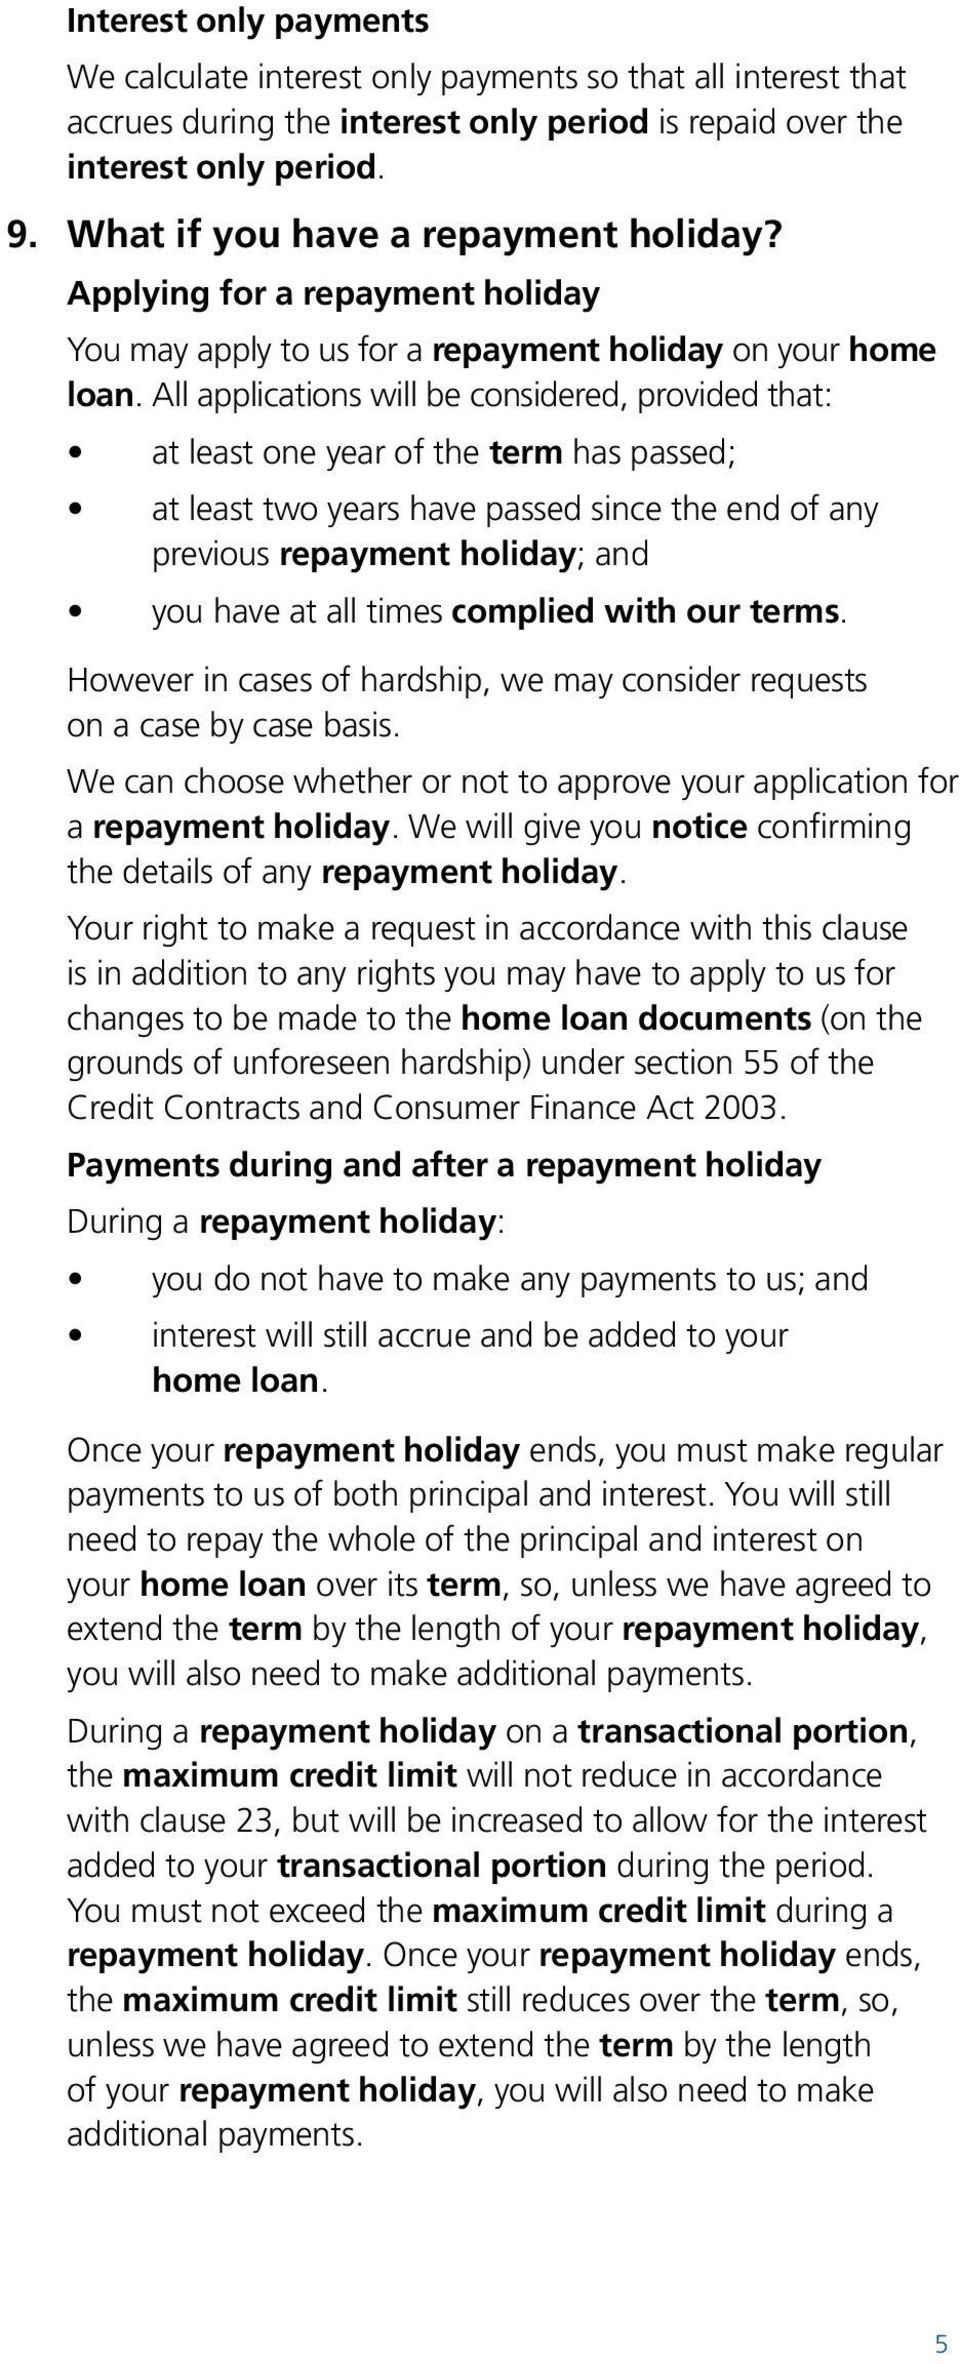 All applications will be considered, provided that: at least one year of the term has passed; at least two years have passed since the end of any previous repayment holiday; and you have at all times